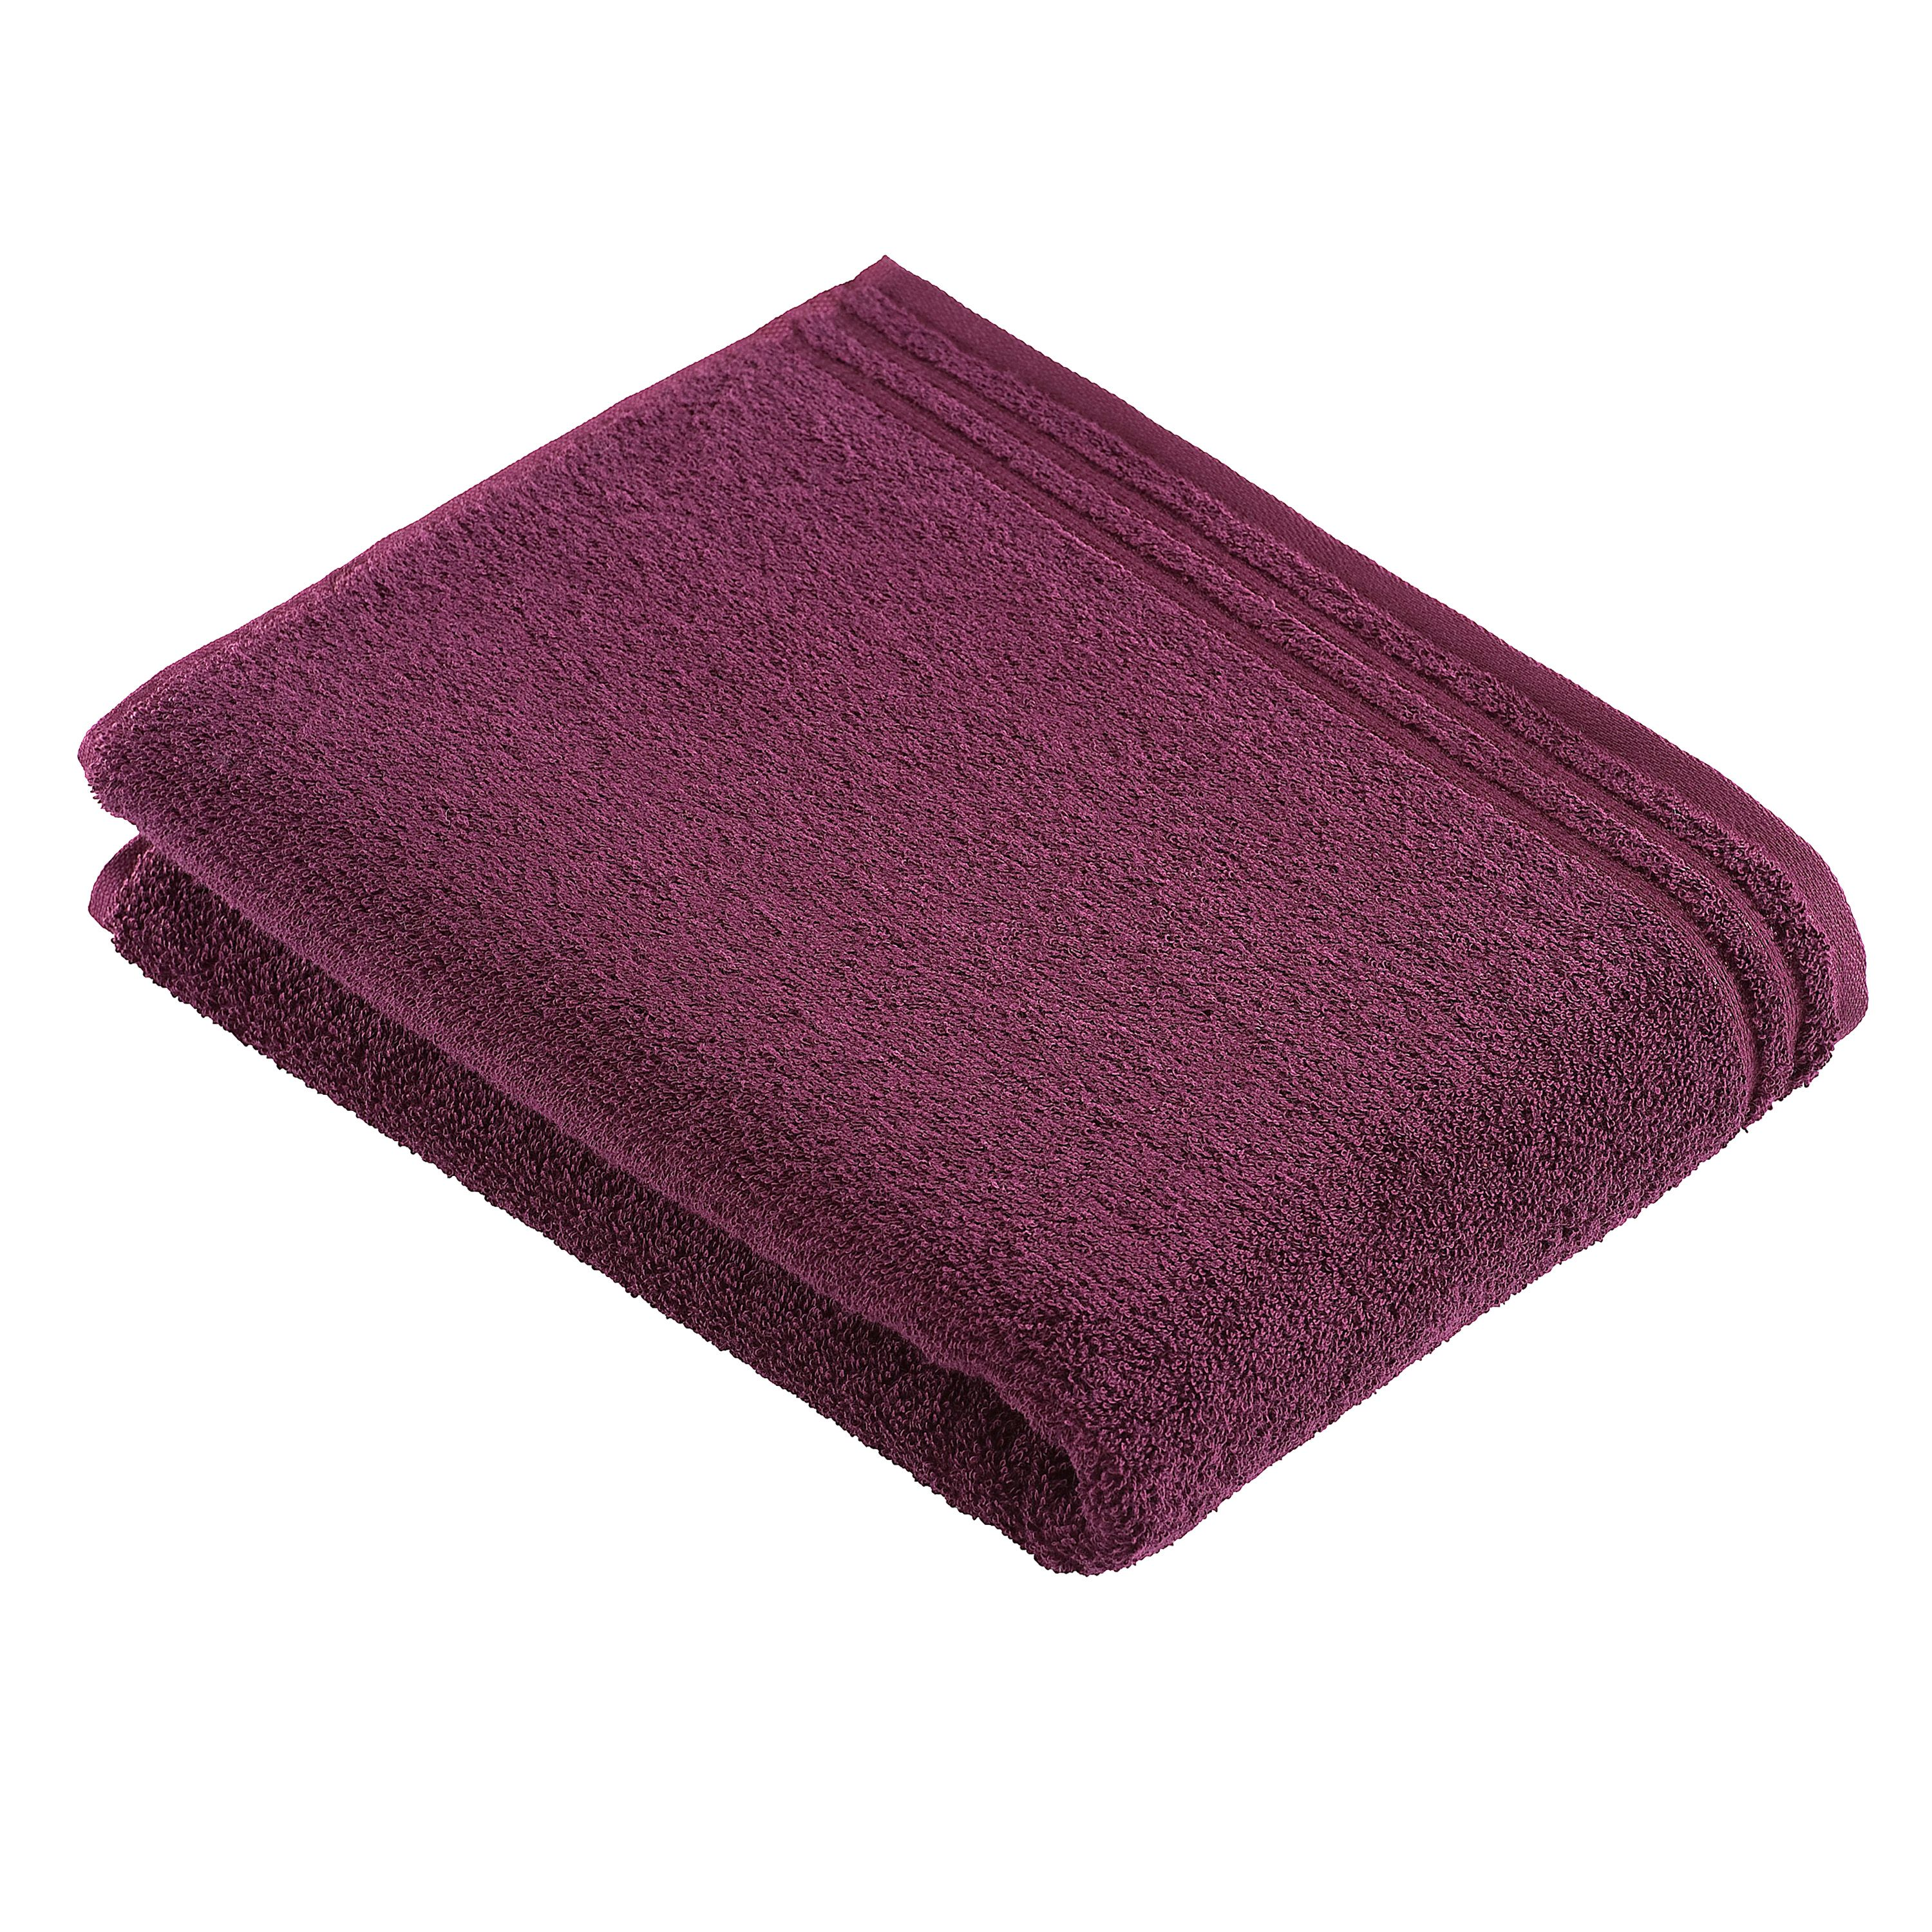 Calypso Feeling towel range in grape